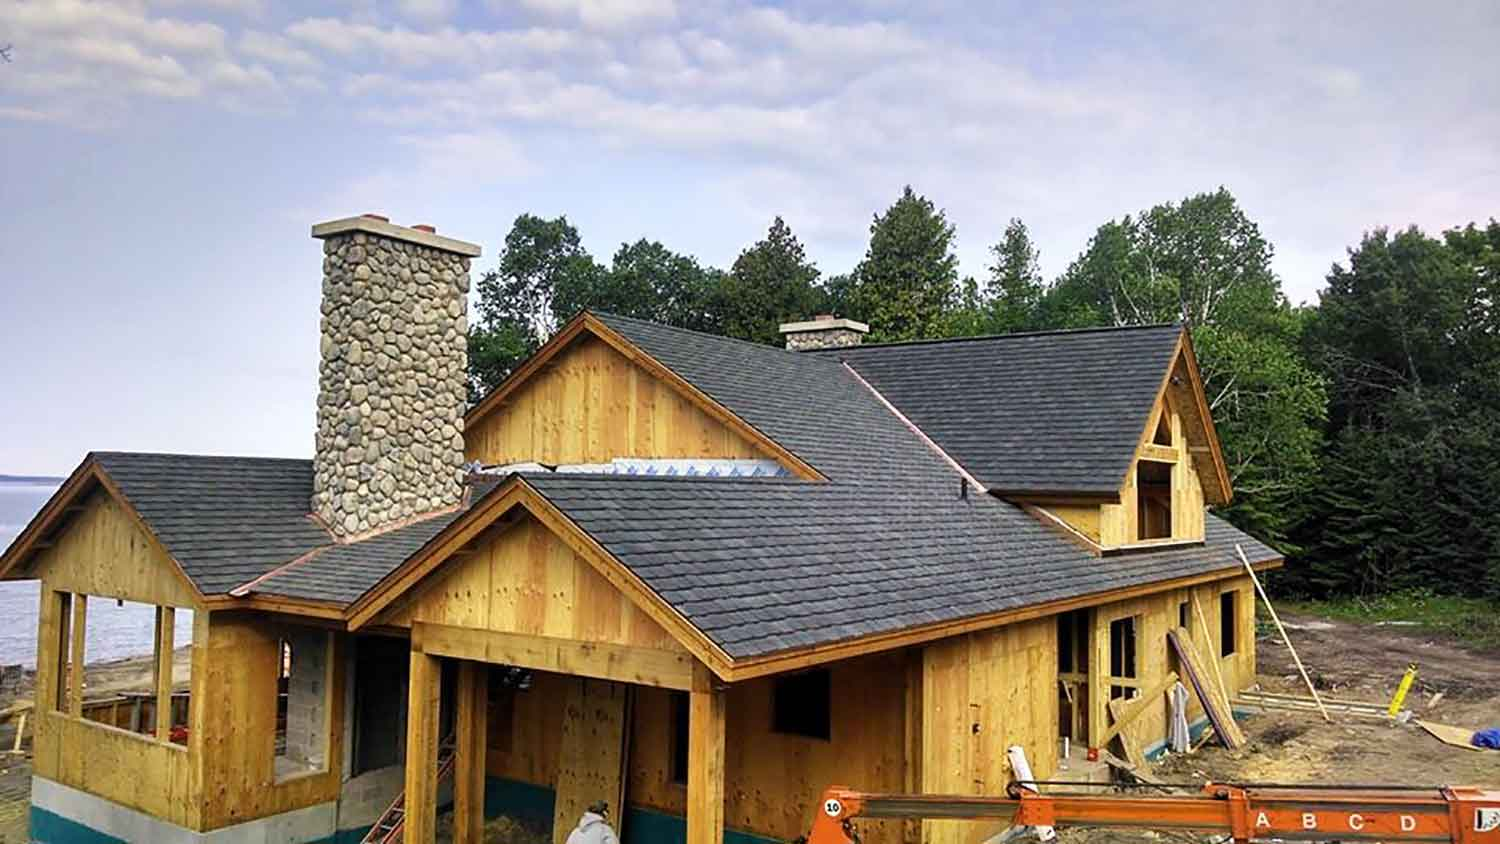 Secure Roofing Inc